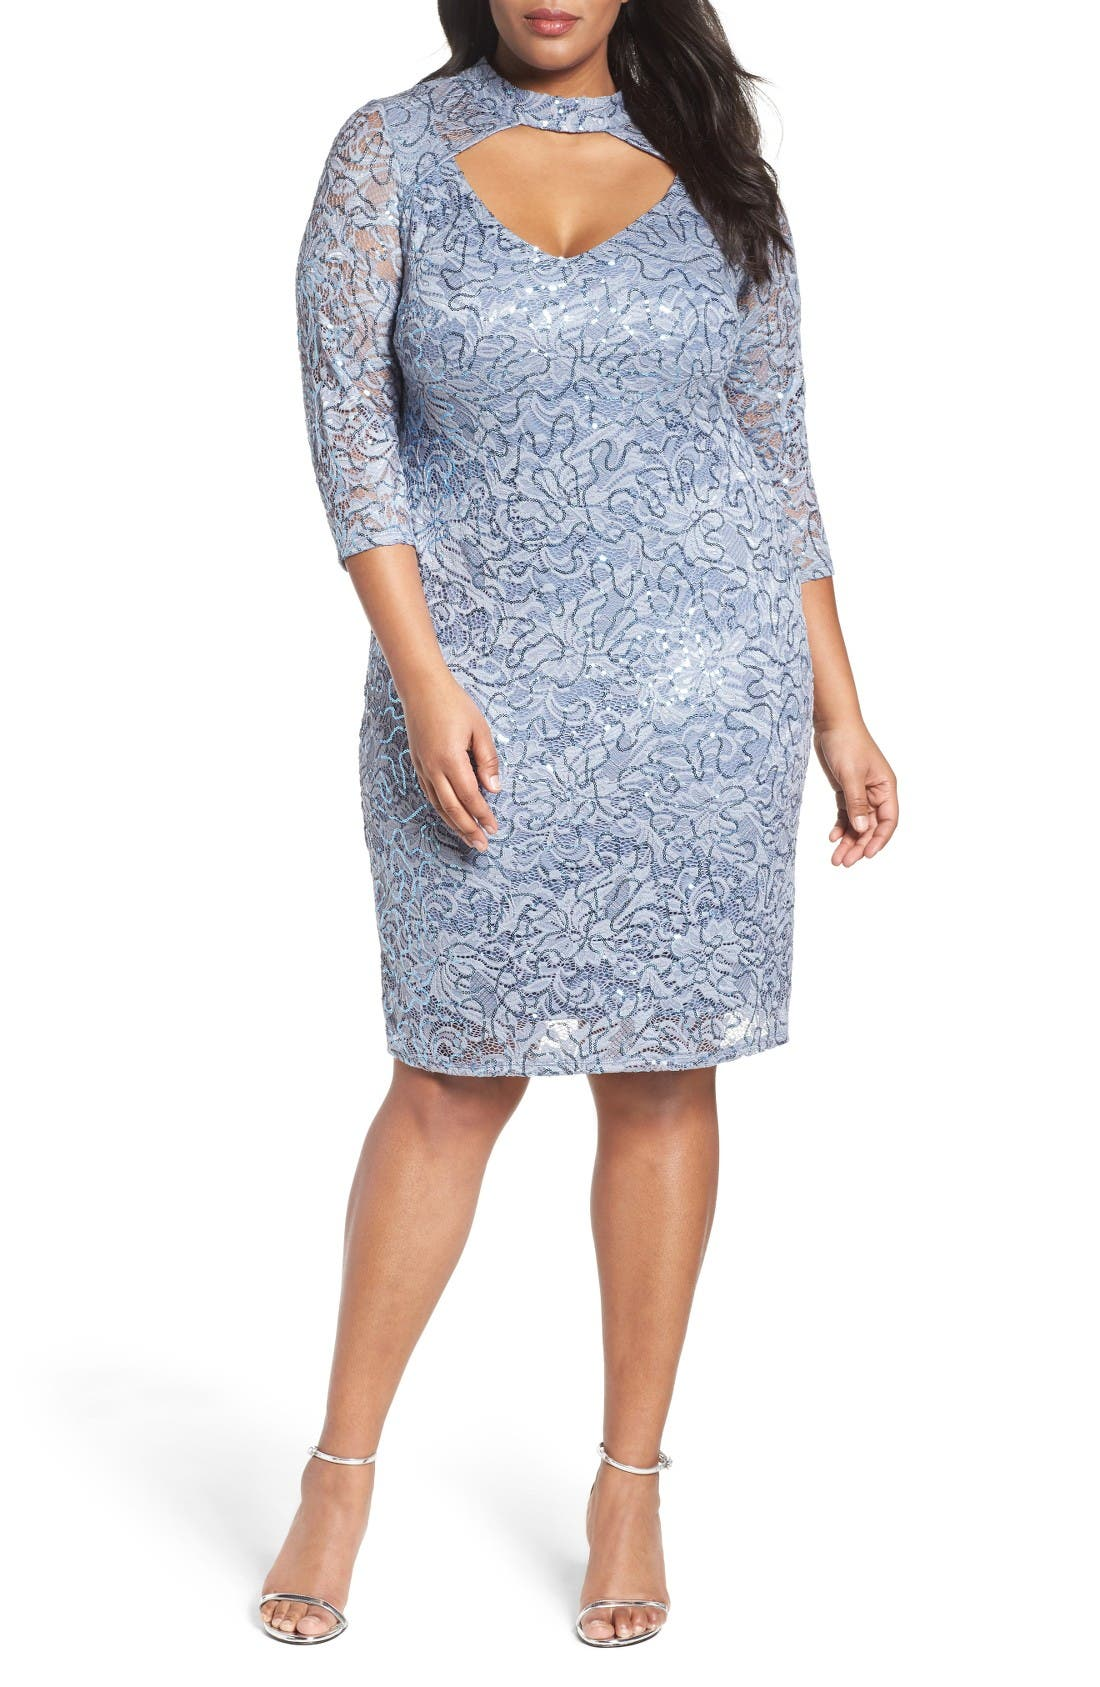 Marina Cutout Sequin Lace Sheath Dress (Plus Size)